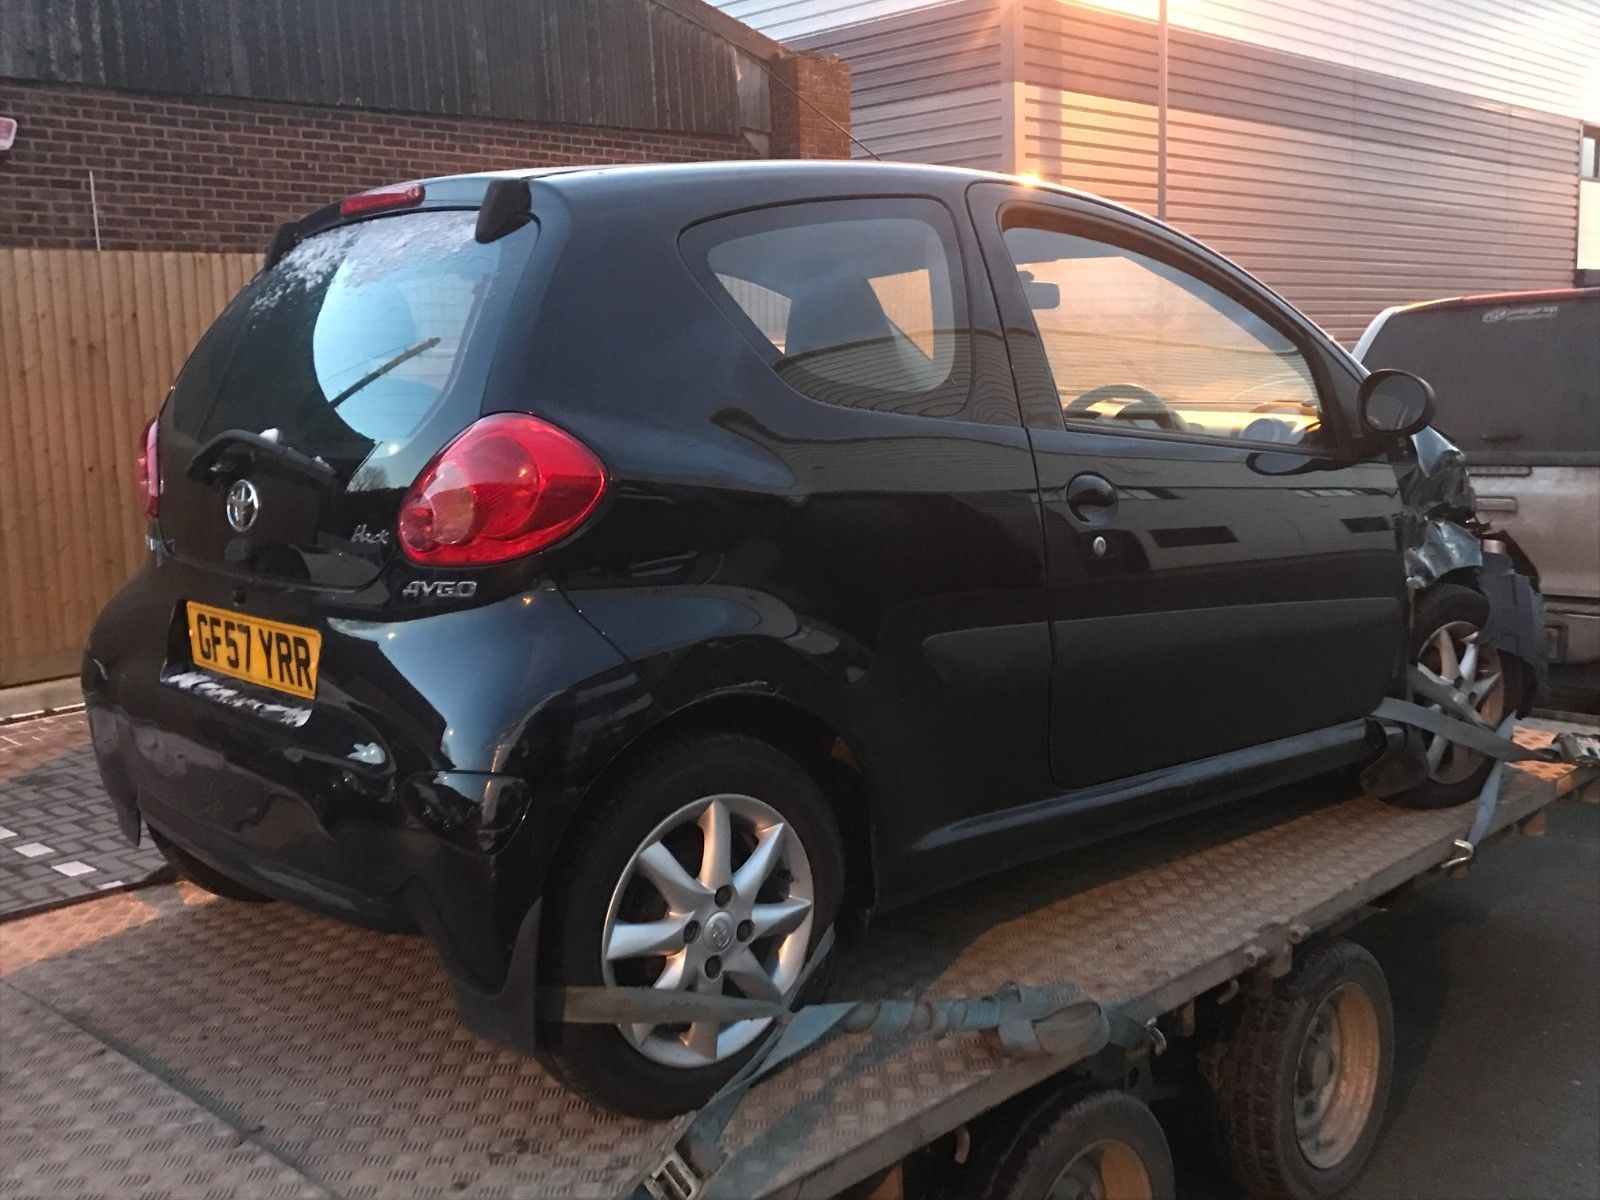 2007 57 Toyota Aygo Black 99k miles - Selling as Unrecorded Salvage ...